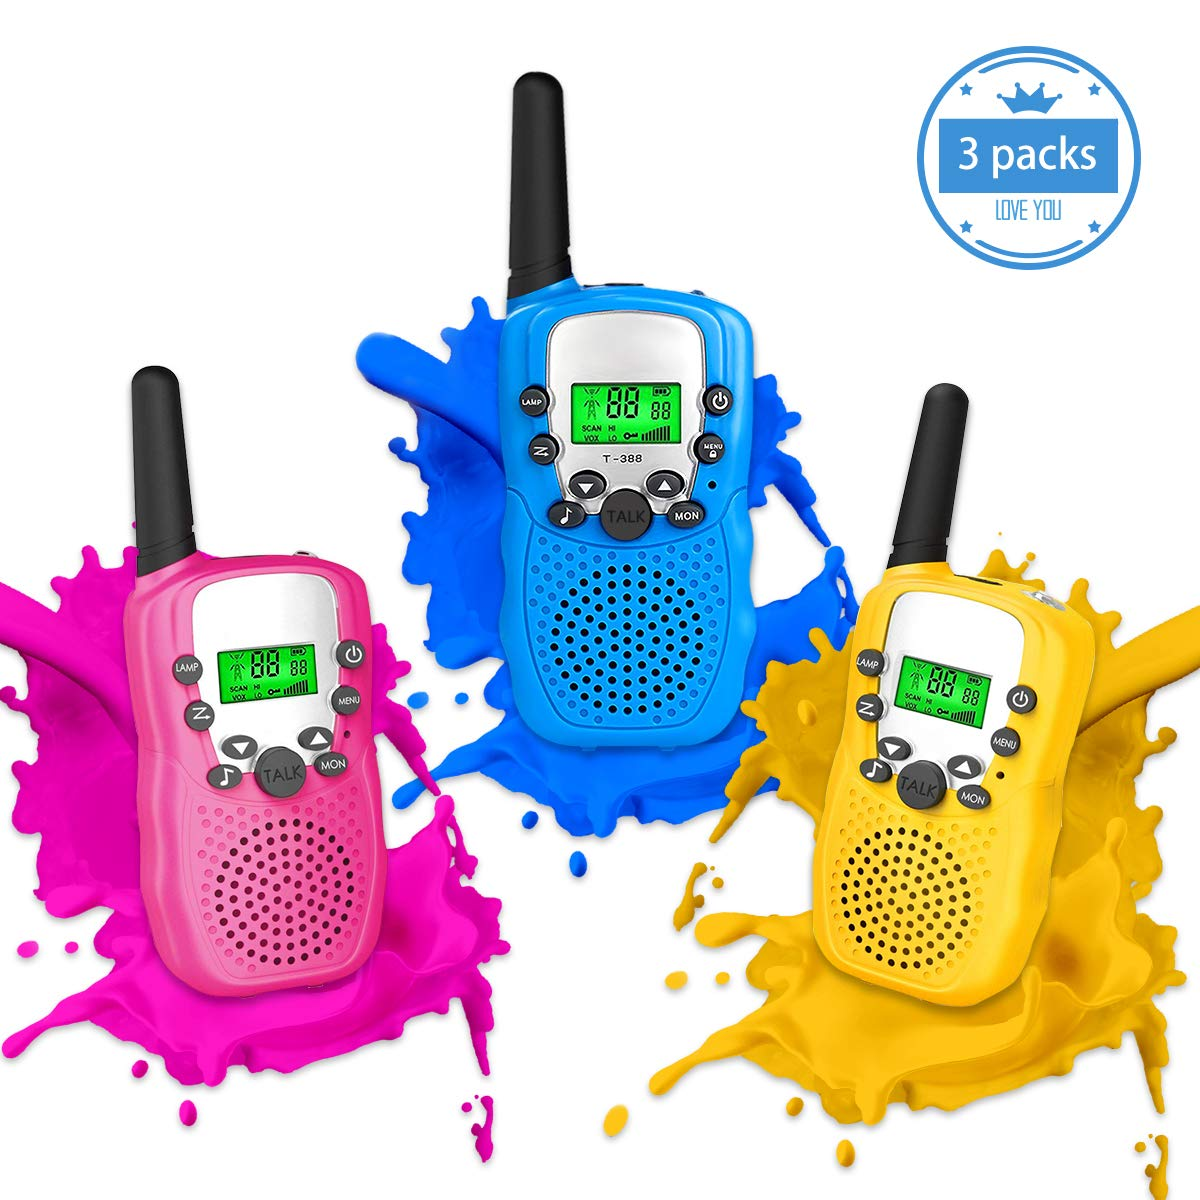 Outdoor Toys for 5-10 Year Old Boys Girls Pussan Kids Walkie Talkies 3 Pack Long Range 2 Miles 22 Channels Kids Camping Outside Summer Games Walky Talky for Children Gifts